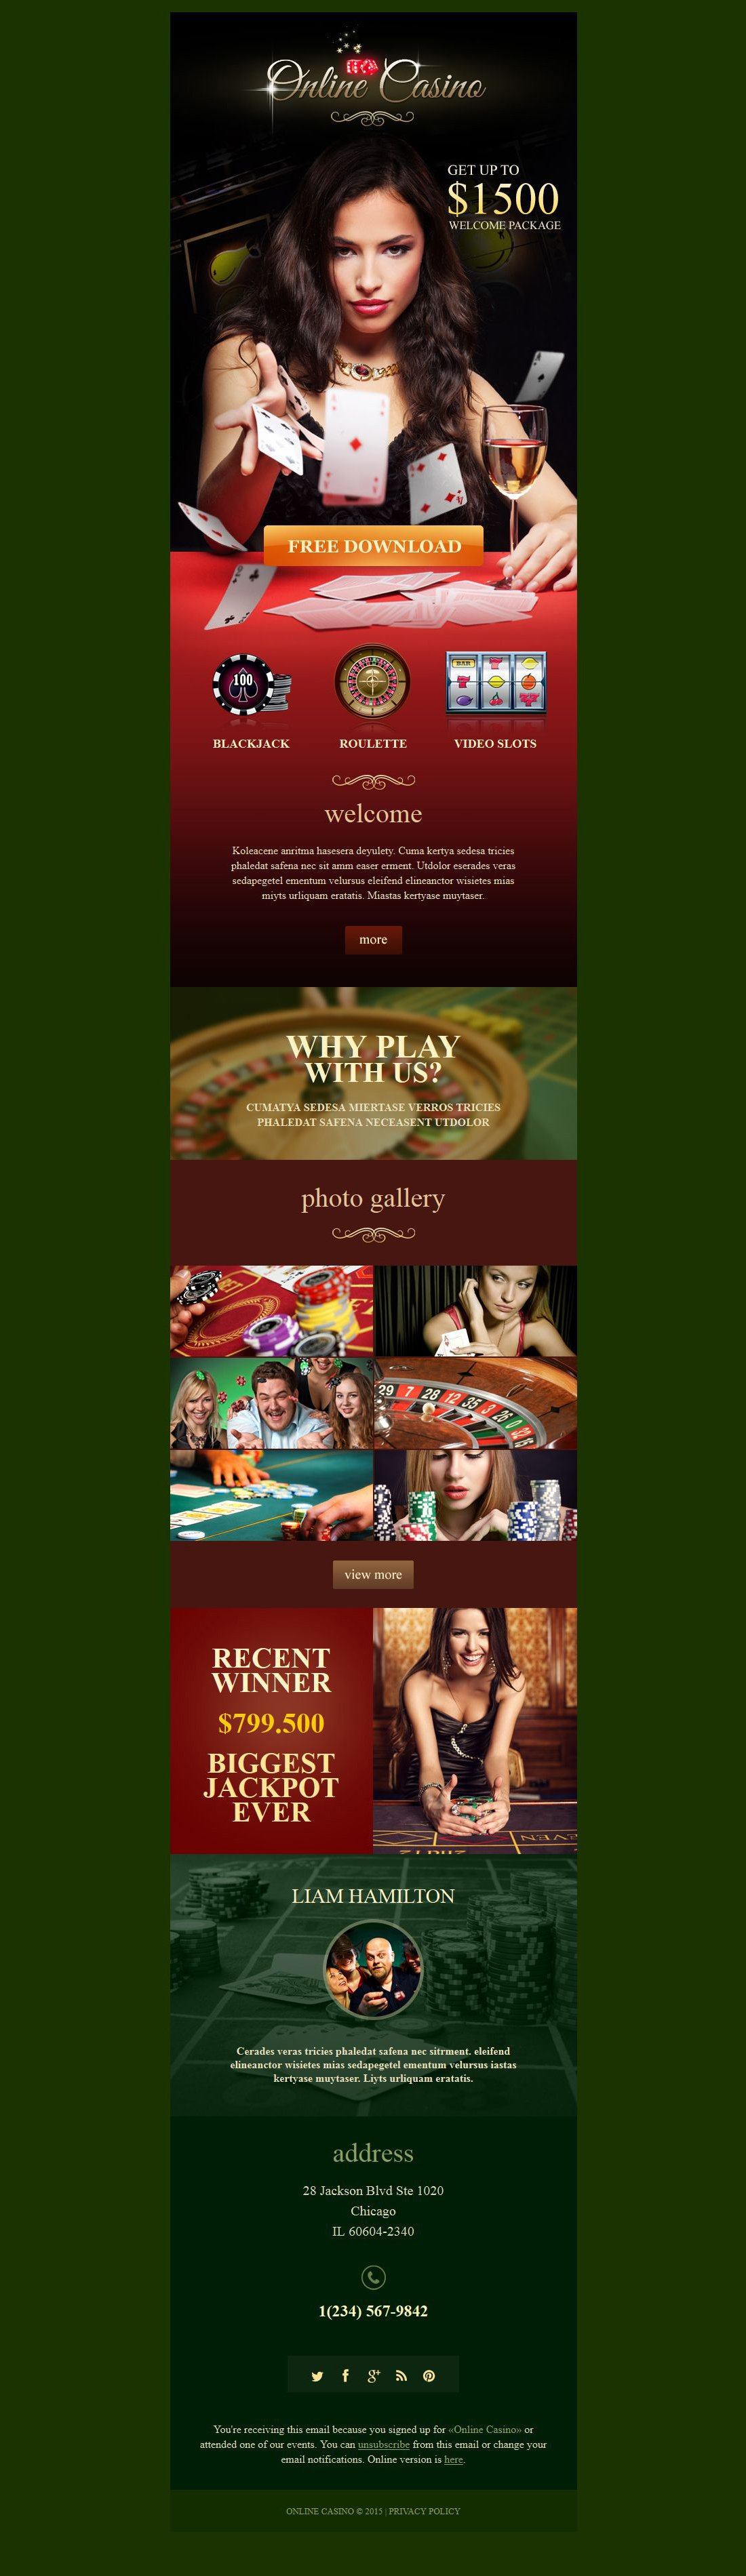 The Online Casino Newsletter Template Design 53030, one of the best Newsletter templates of its kind (most popular, online casino), also known as online casino Newsletter template, poker Newsletter template, entertainment Newsletter template, luck Newsletter template, fortune Newsletter template, success Newsletter template, cards Newsletter template, roulette Newsletter template, poker Newsletter template, tournament Newsletter template, winning Newsletter template, players Newsletter template, participant Newsletter template, jackpot Newsletter template, bridge Newsletter template, baccarat Newsletter template, blackjack Newsletter template, slots Newsletter template, craps Newsletter template, dice Newsletter template, bonuses Newsletter template, cashier Newsletter template, methods Newsletter template, rules Newsletter template, support Newsletter template, affiliation Newsletter template, clients Newsletter template, currency Newsletter template, money Newsletter template, pay and related with online casino, poker, entertainment, luck, fortune, success, cards, roulette, poker, tournament, winning, players, participant, jackpot, bridge, baccarat, blackjack, slots, craps, dice, bonuses, cashier, methods, rules, support, affiliation, clients, currency, money, pay, etc.